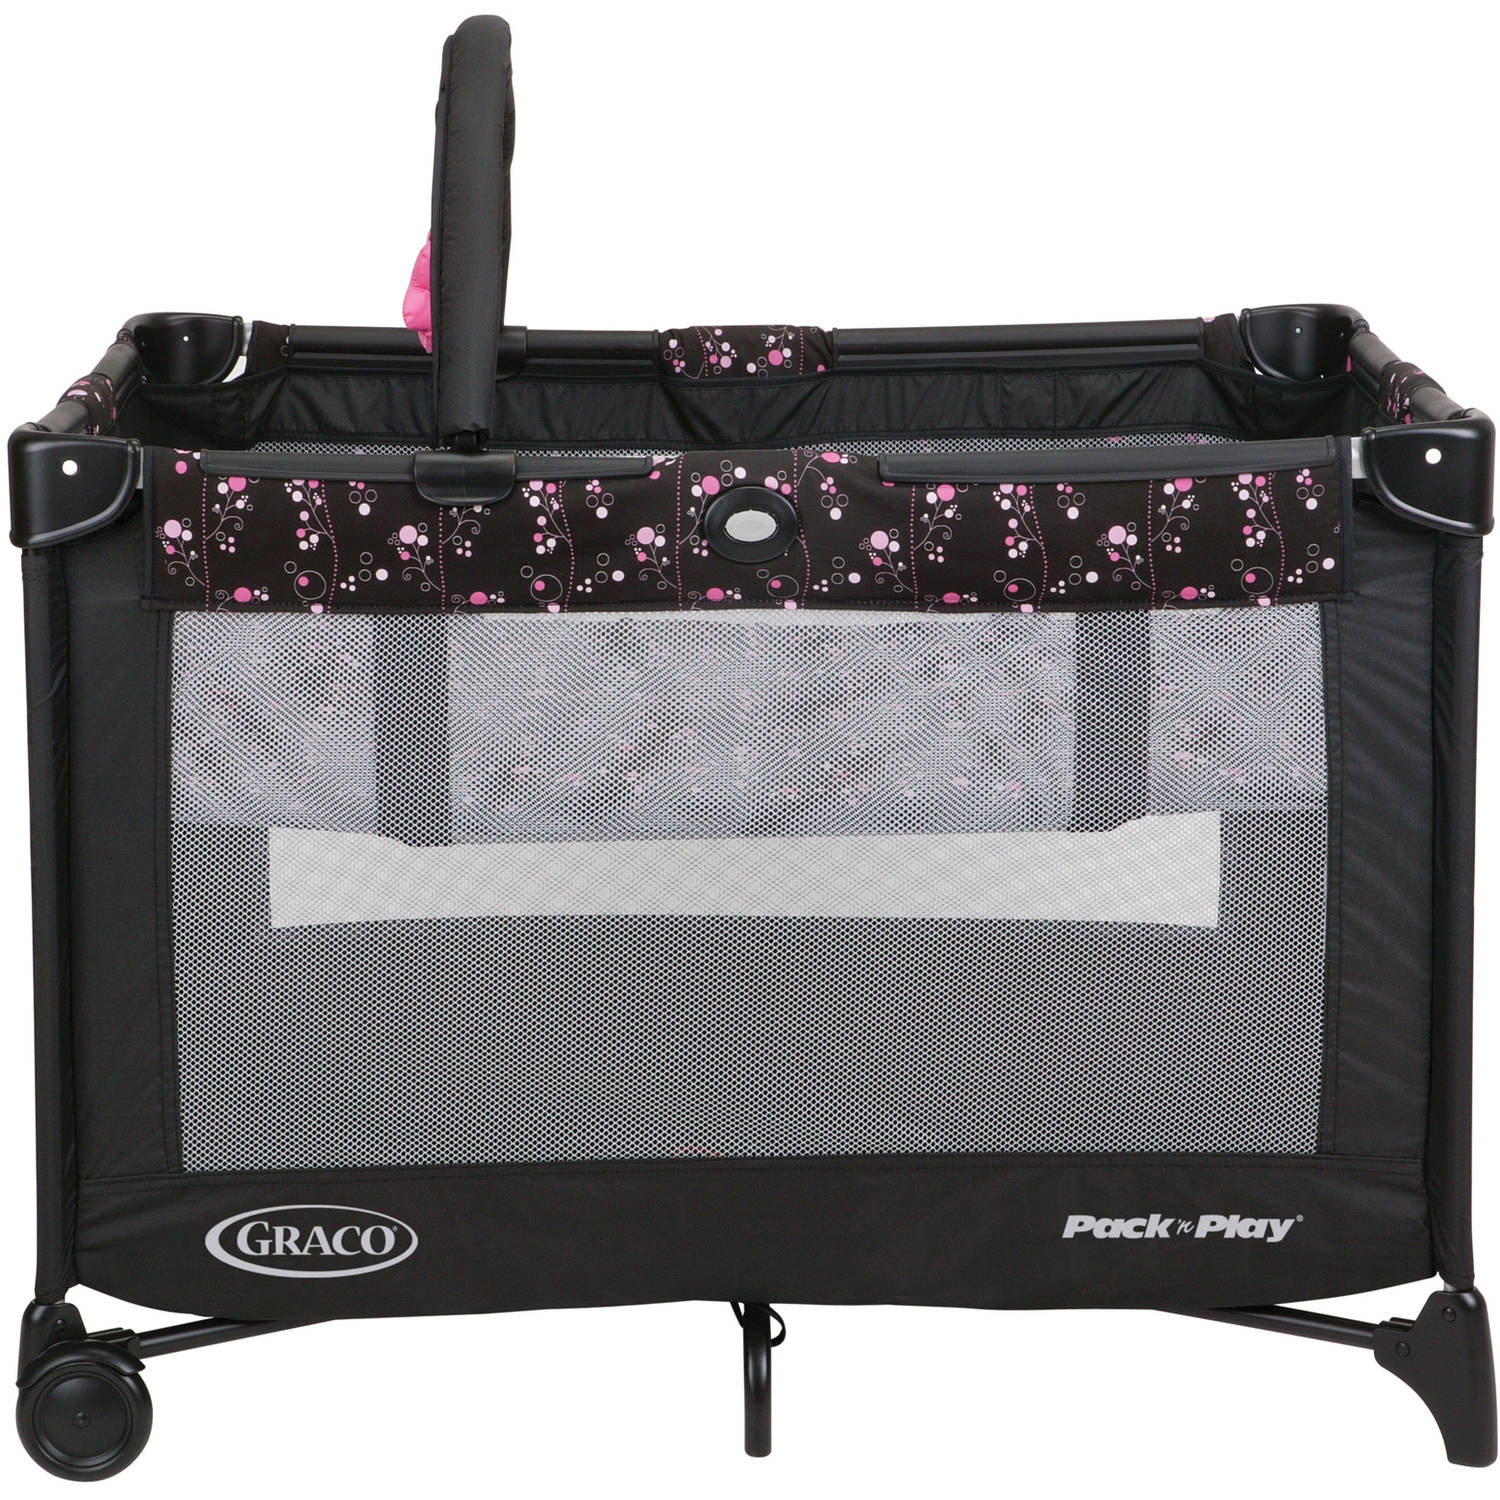 Graco Pack 'N Play with Automatic Folding Feet Playard, Priscilla -  Walmart.com